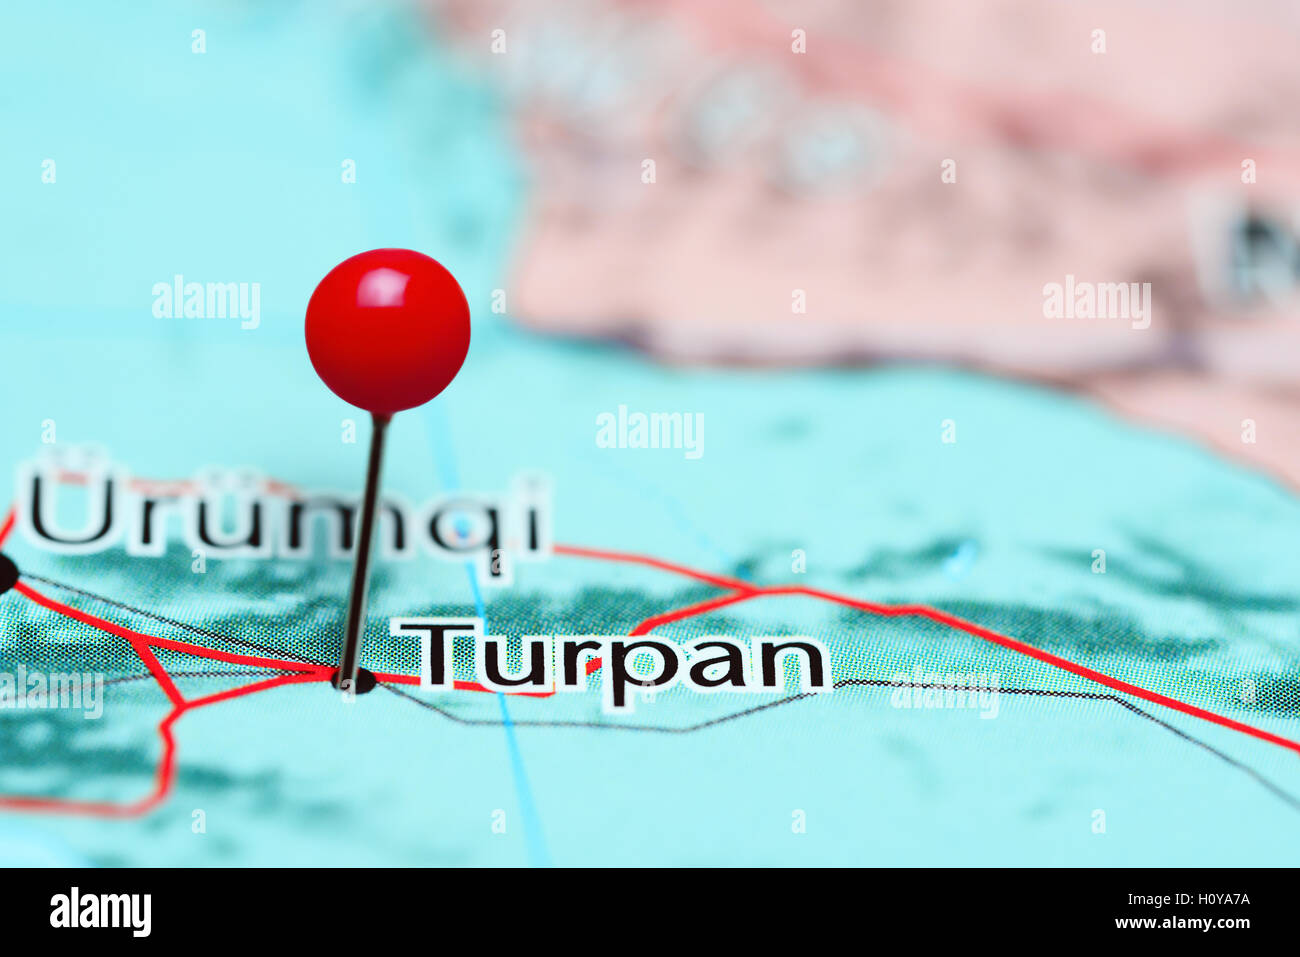 Turpan pinned on a map of China - Stock Image